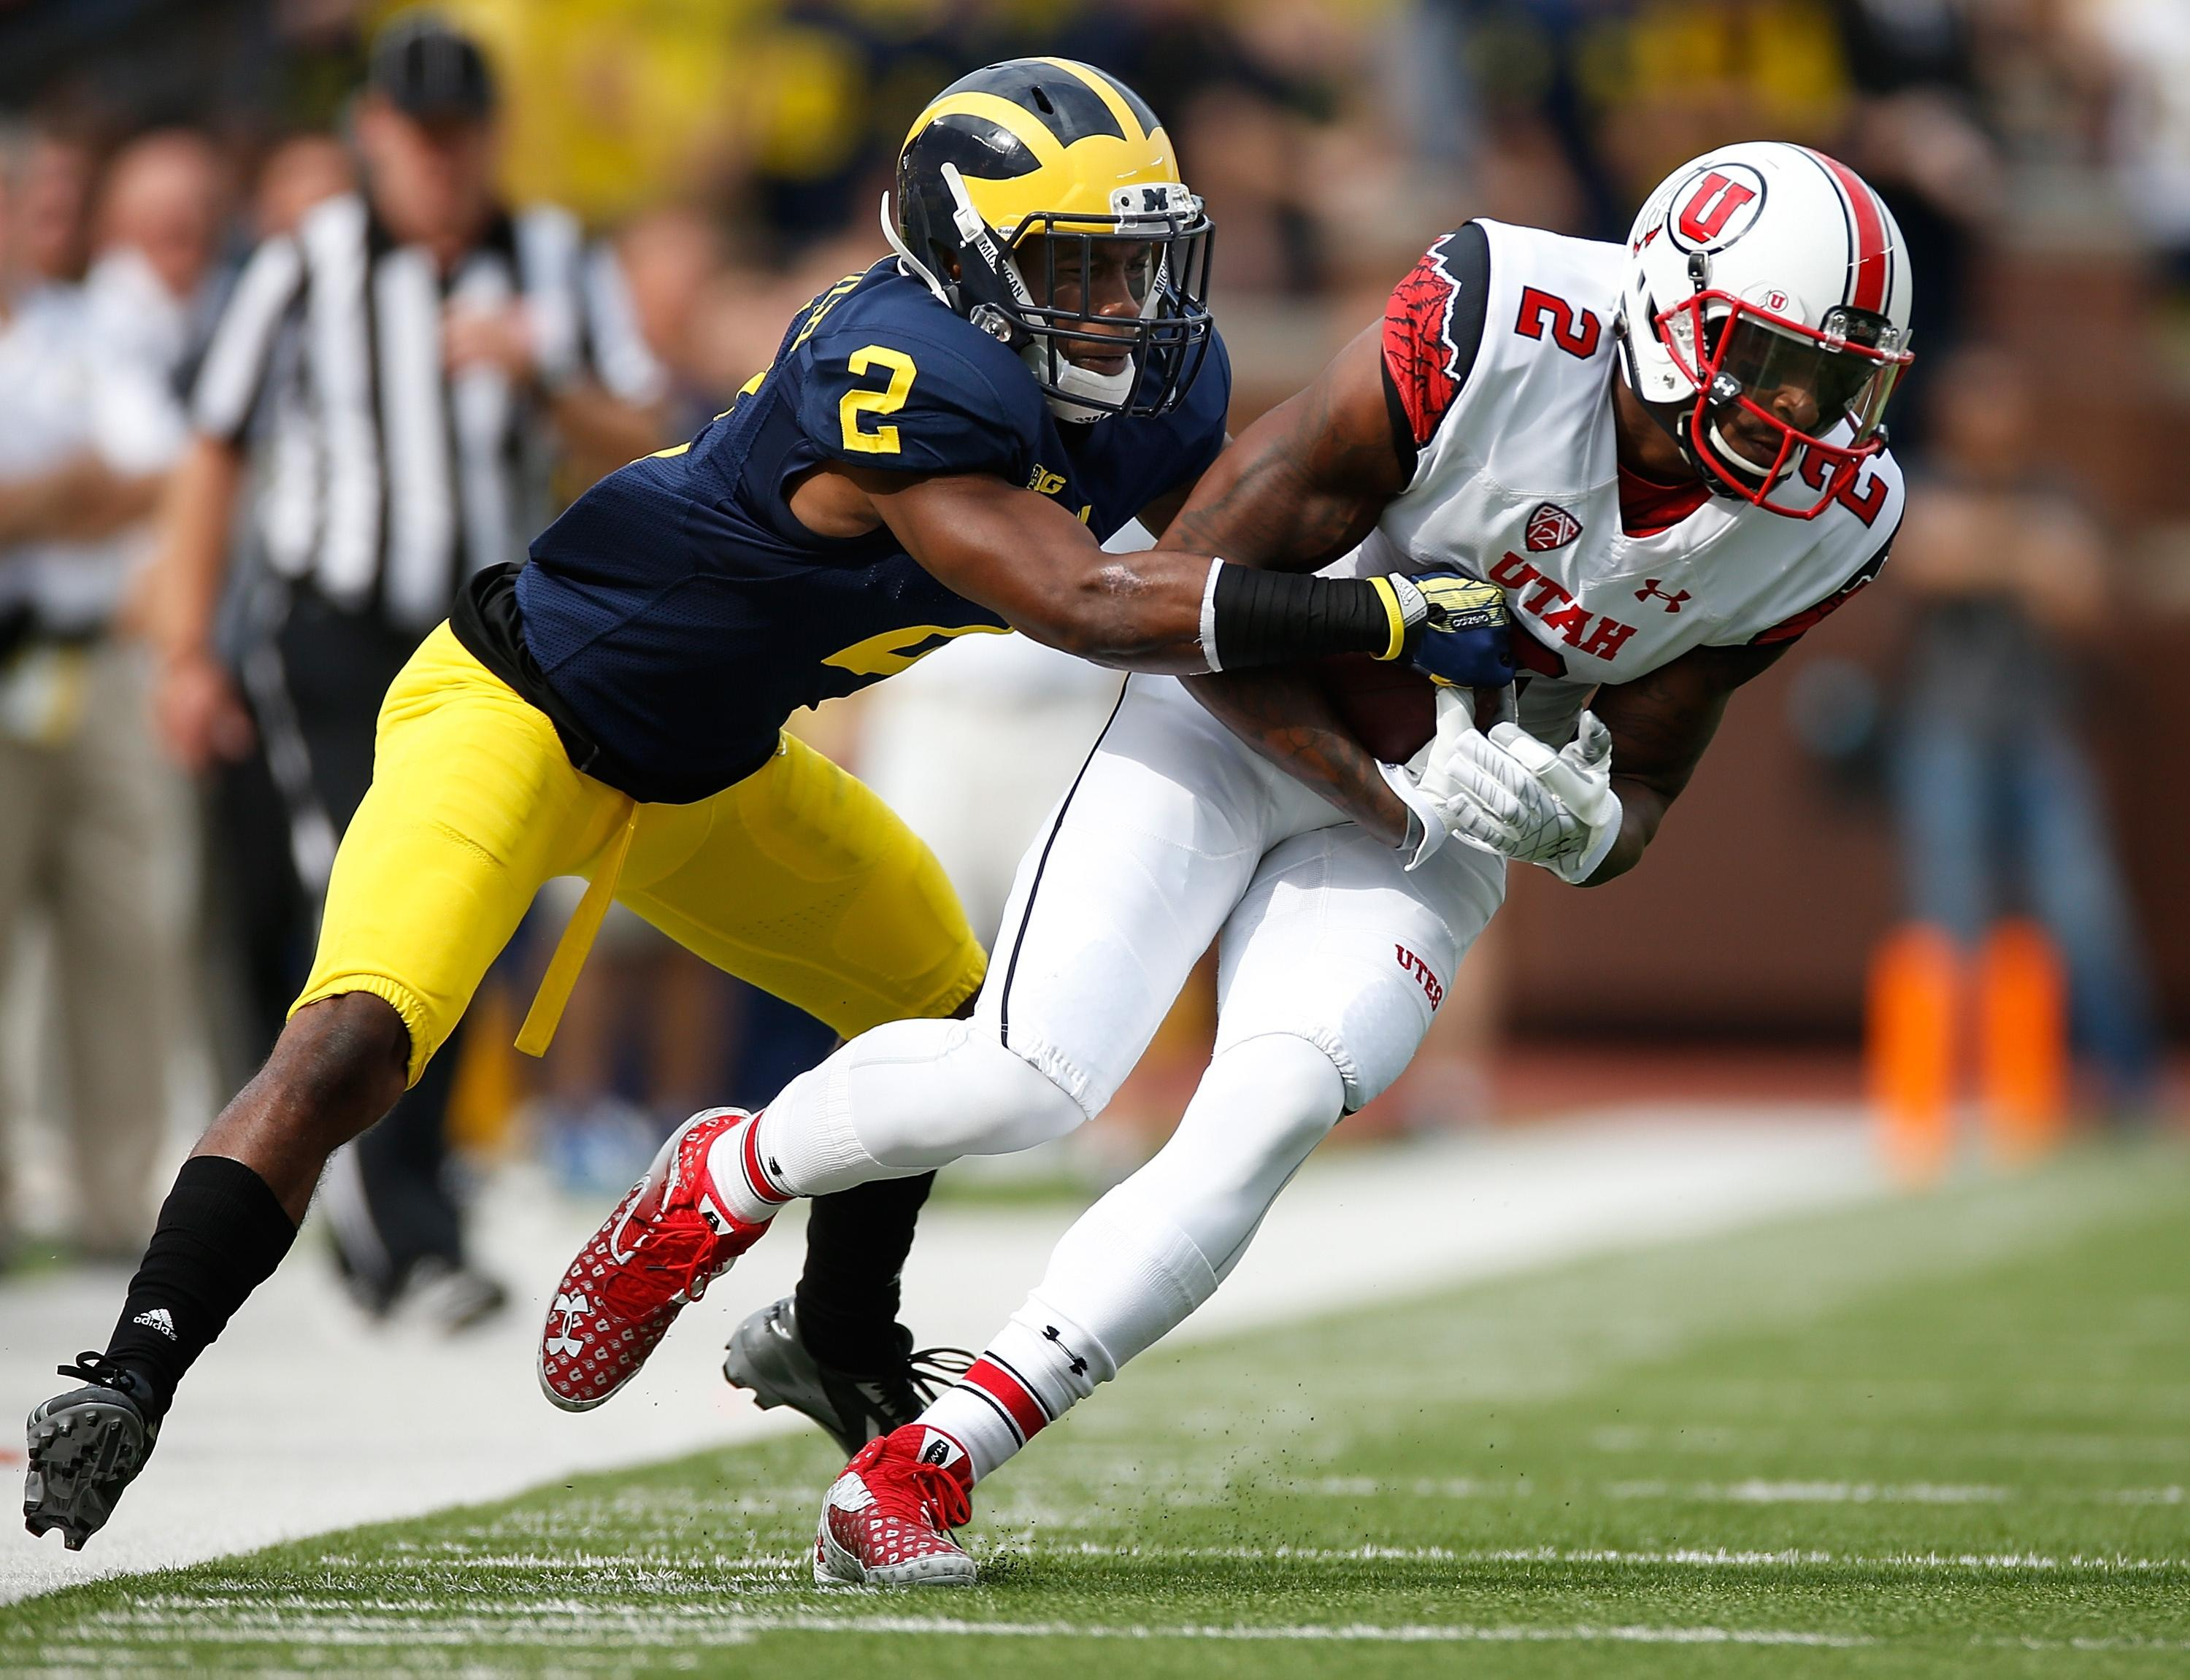 Michigan DBs Jabrill Peppers and Blake Countess show off gymnastics skills (Videos)